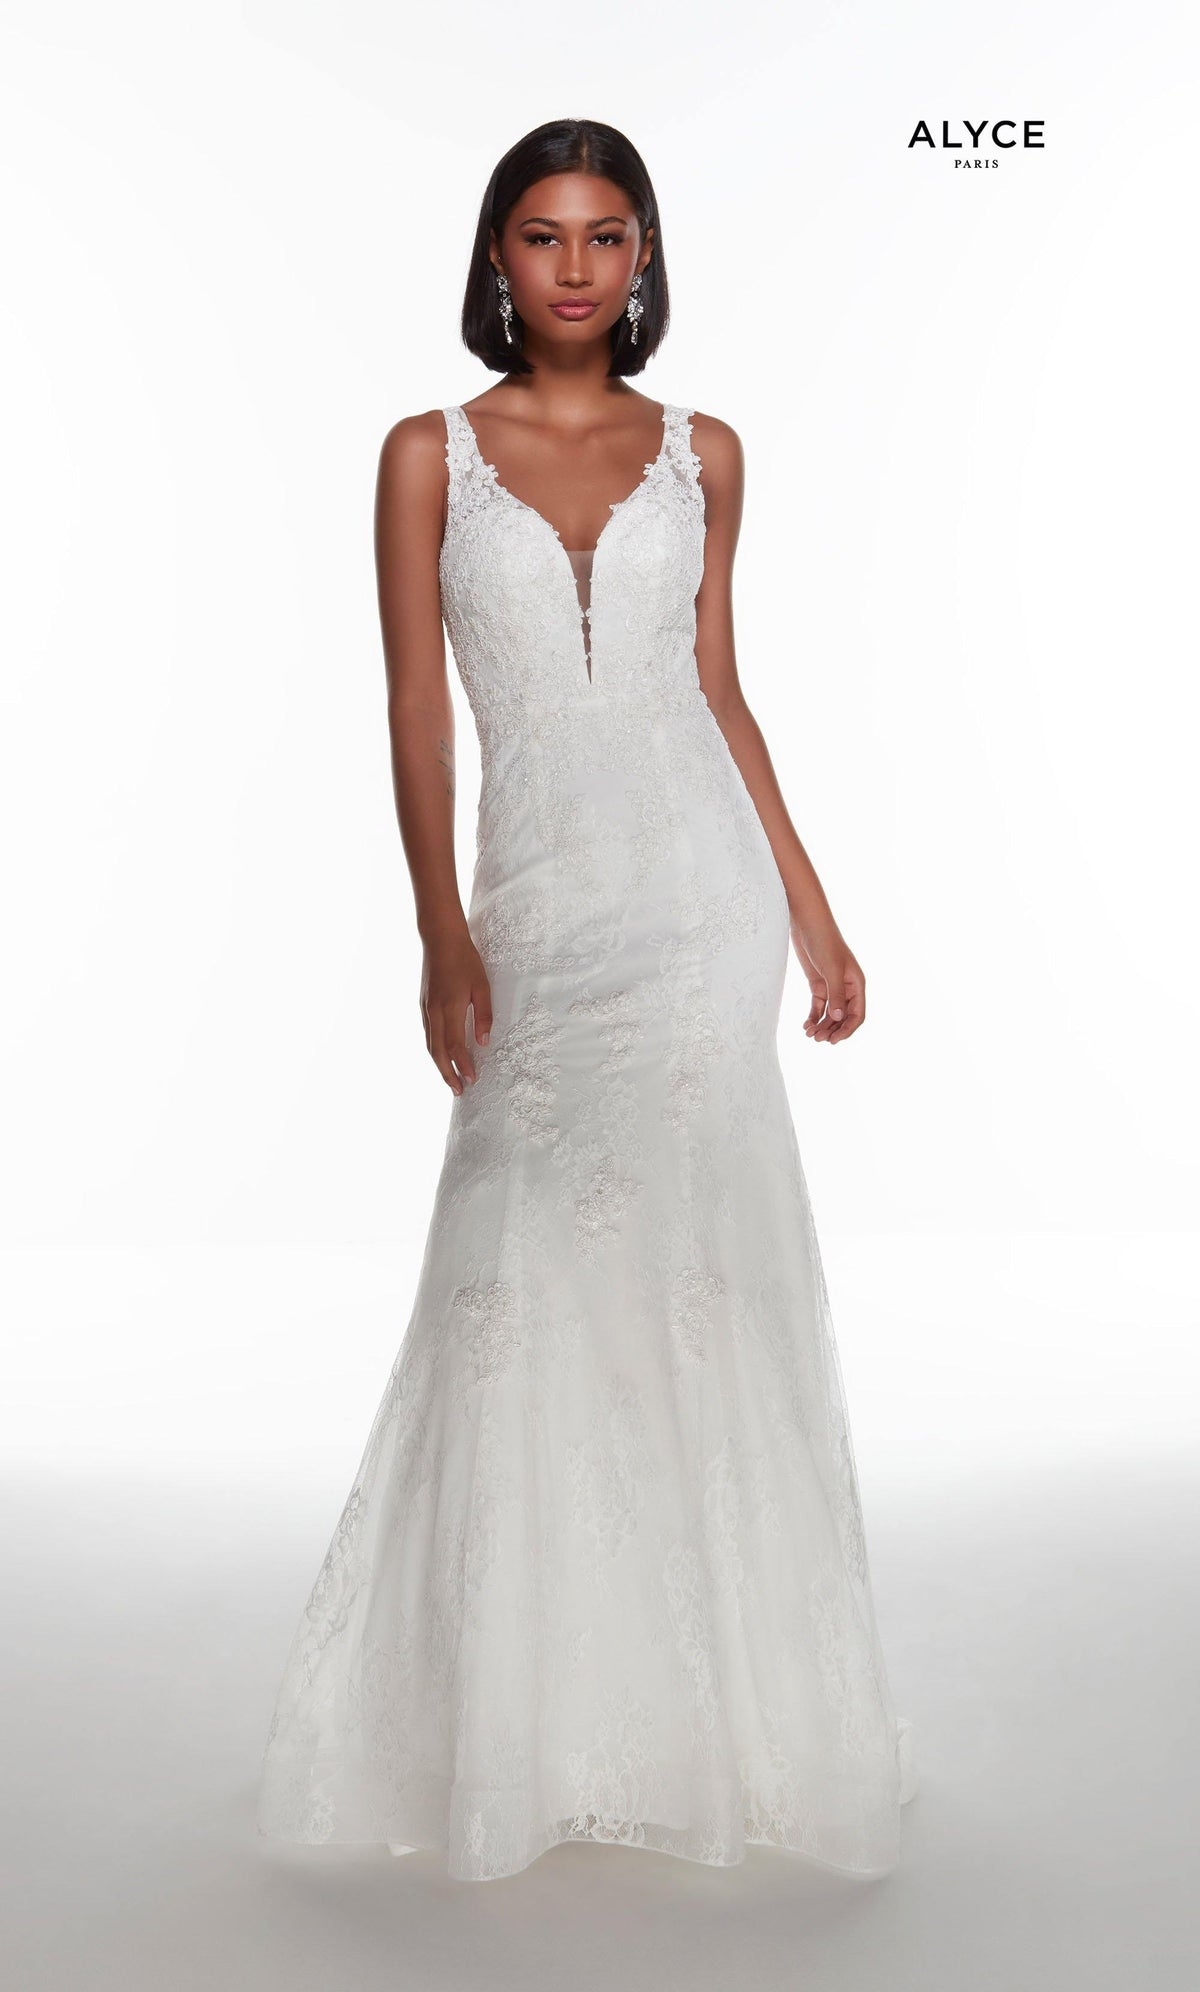 Diamond White lace mermaid style wedding dress with an illusion plunging neckline